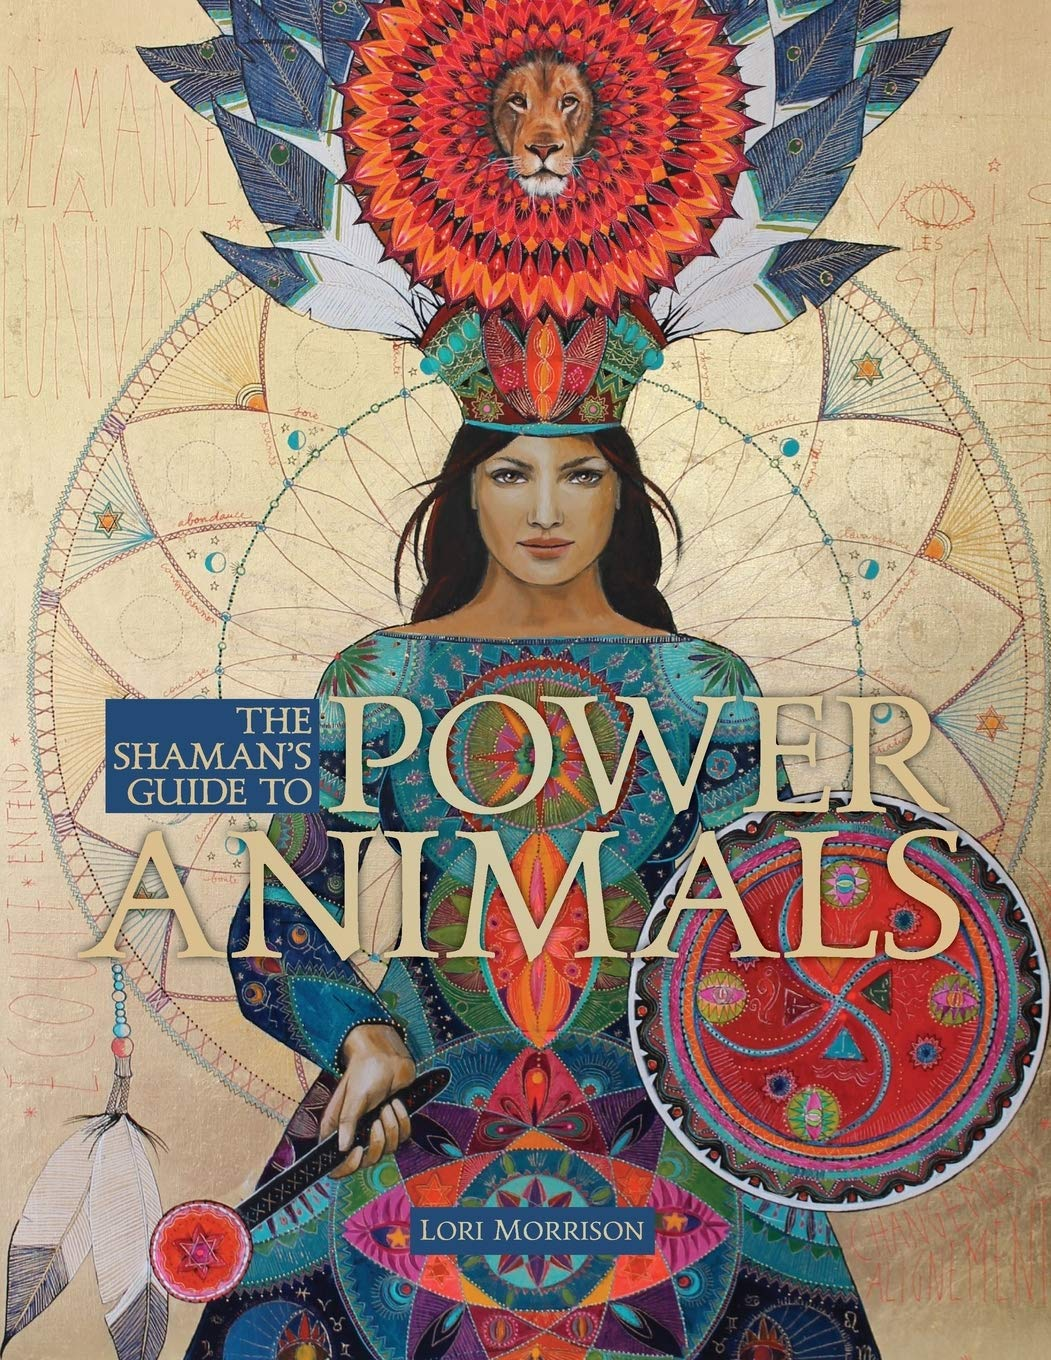 The Shaman S Guide To Power Animals Morrison Lori 9780998737898 Amazon Com Books